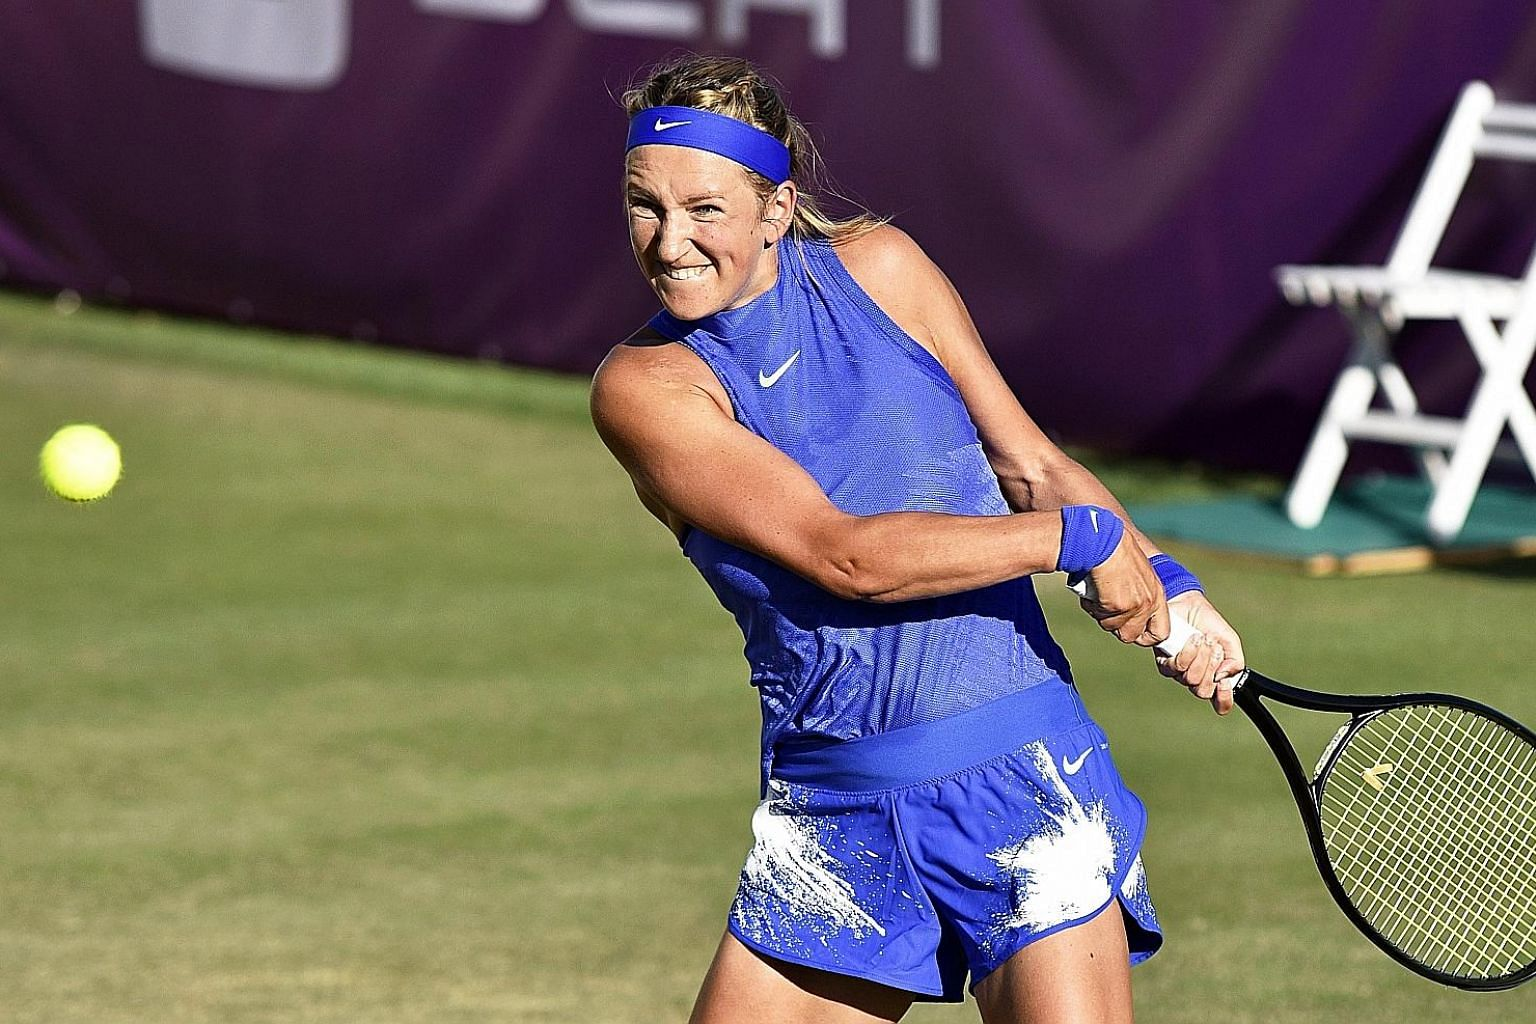 Victoria Azarenka, playing in her first match back after giving birth, in Mallorca last month, looks forward to Wimbledon.